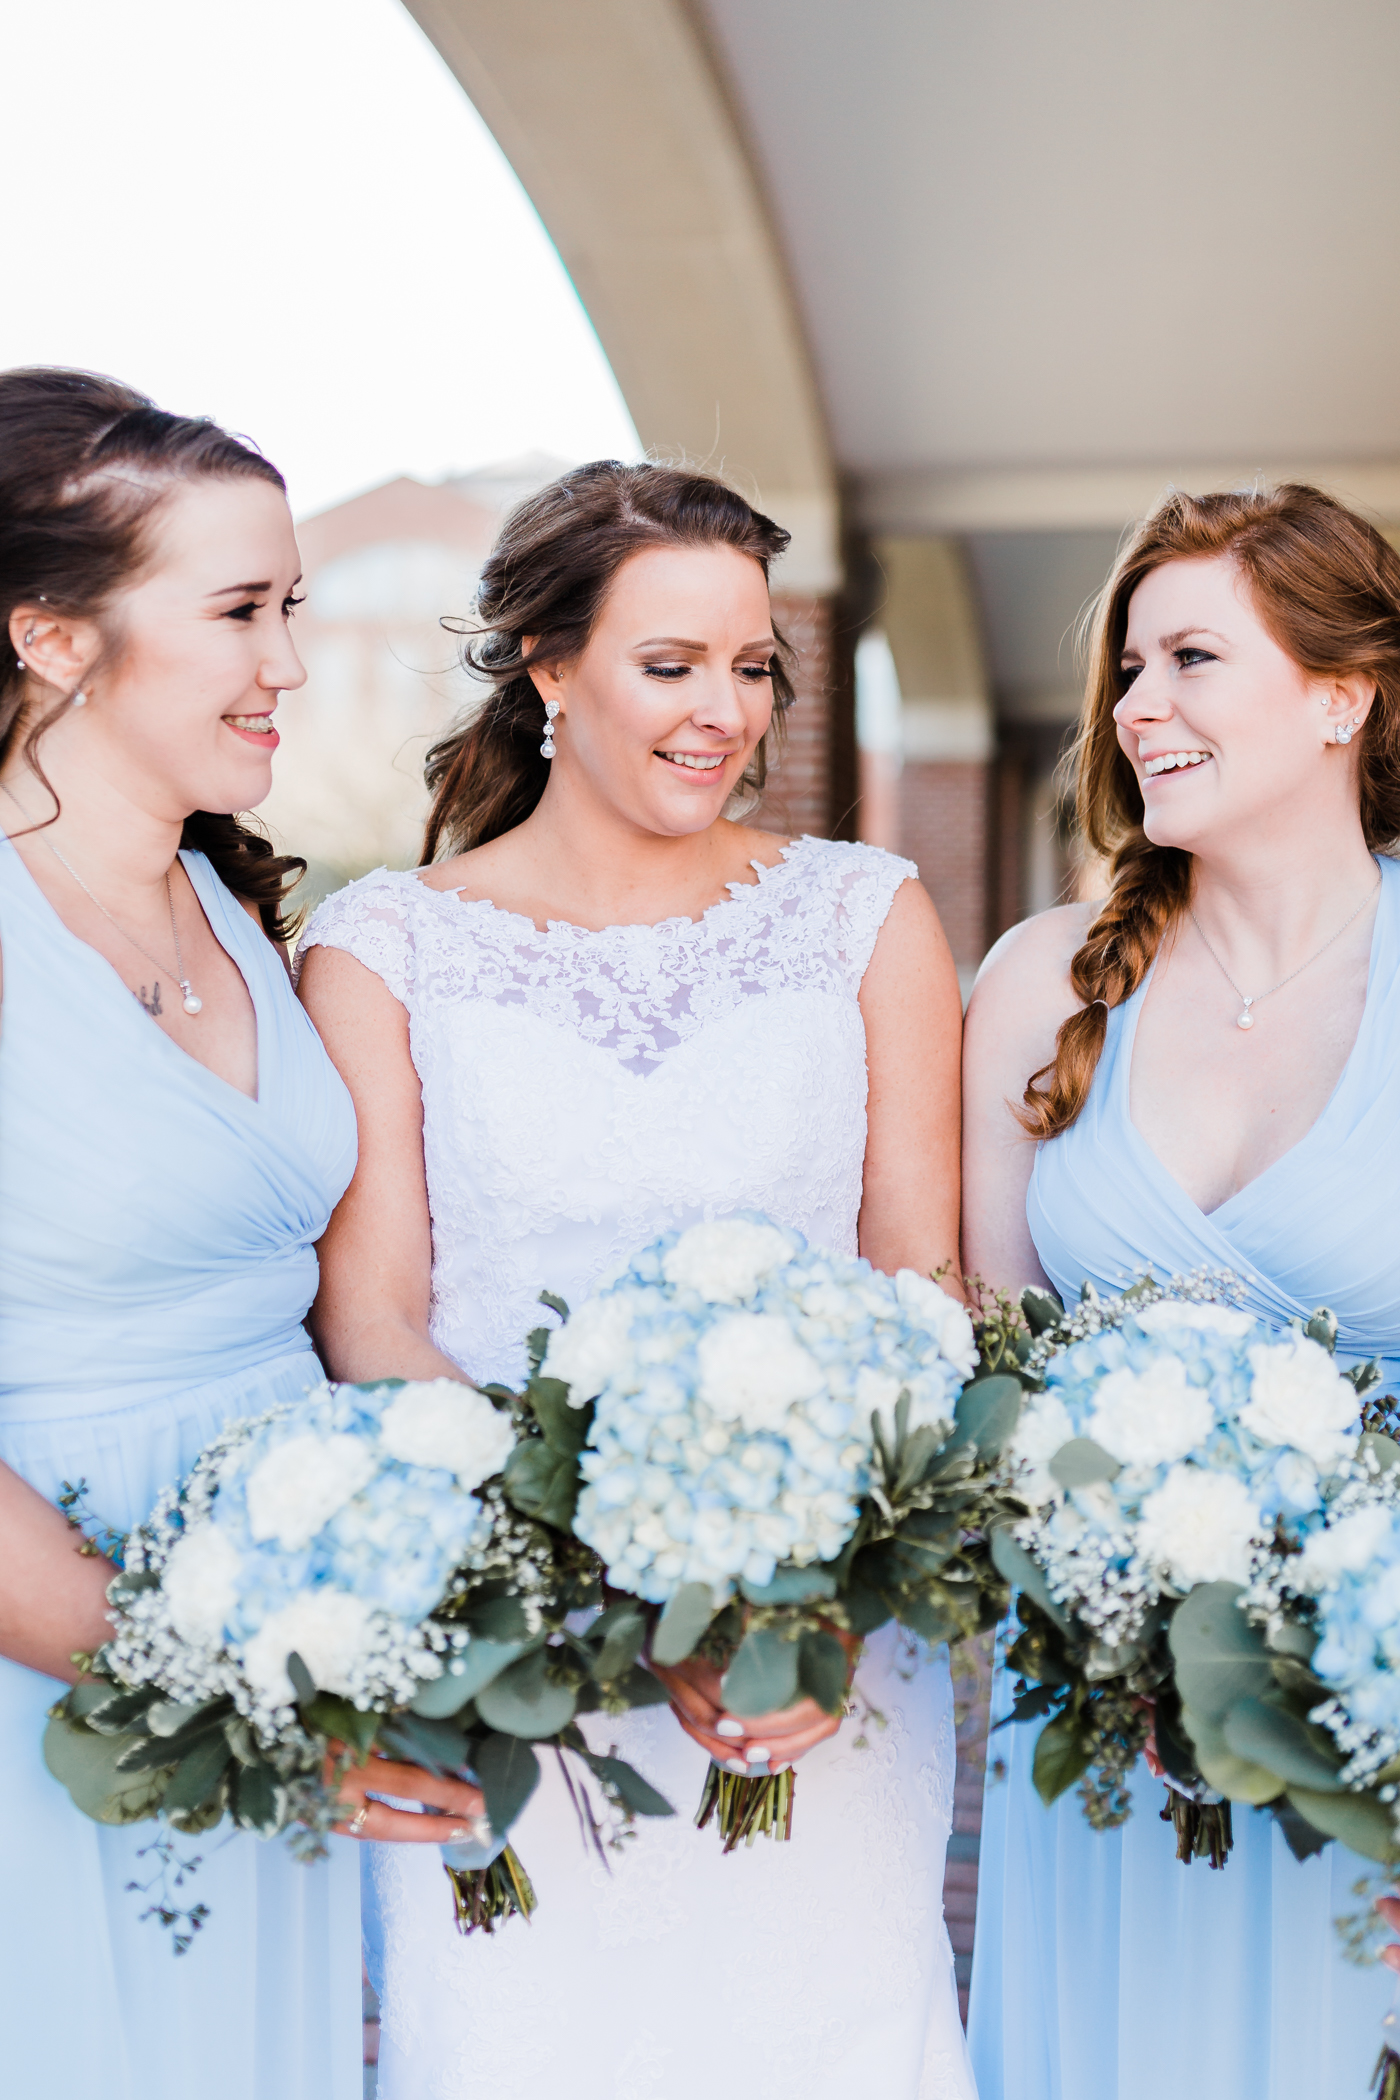 Stunning bride posing with her bridesmaids on her wedding day